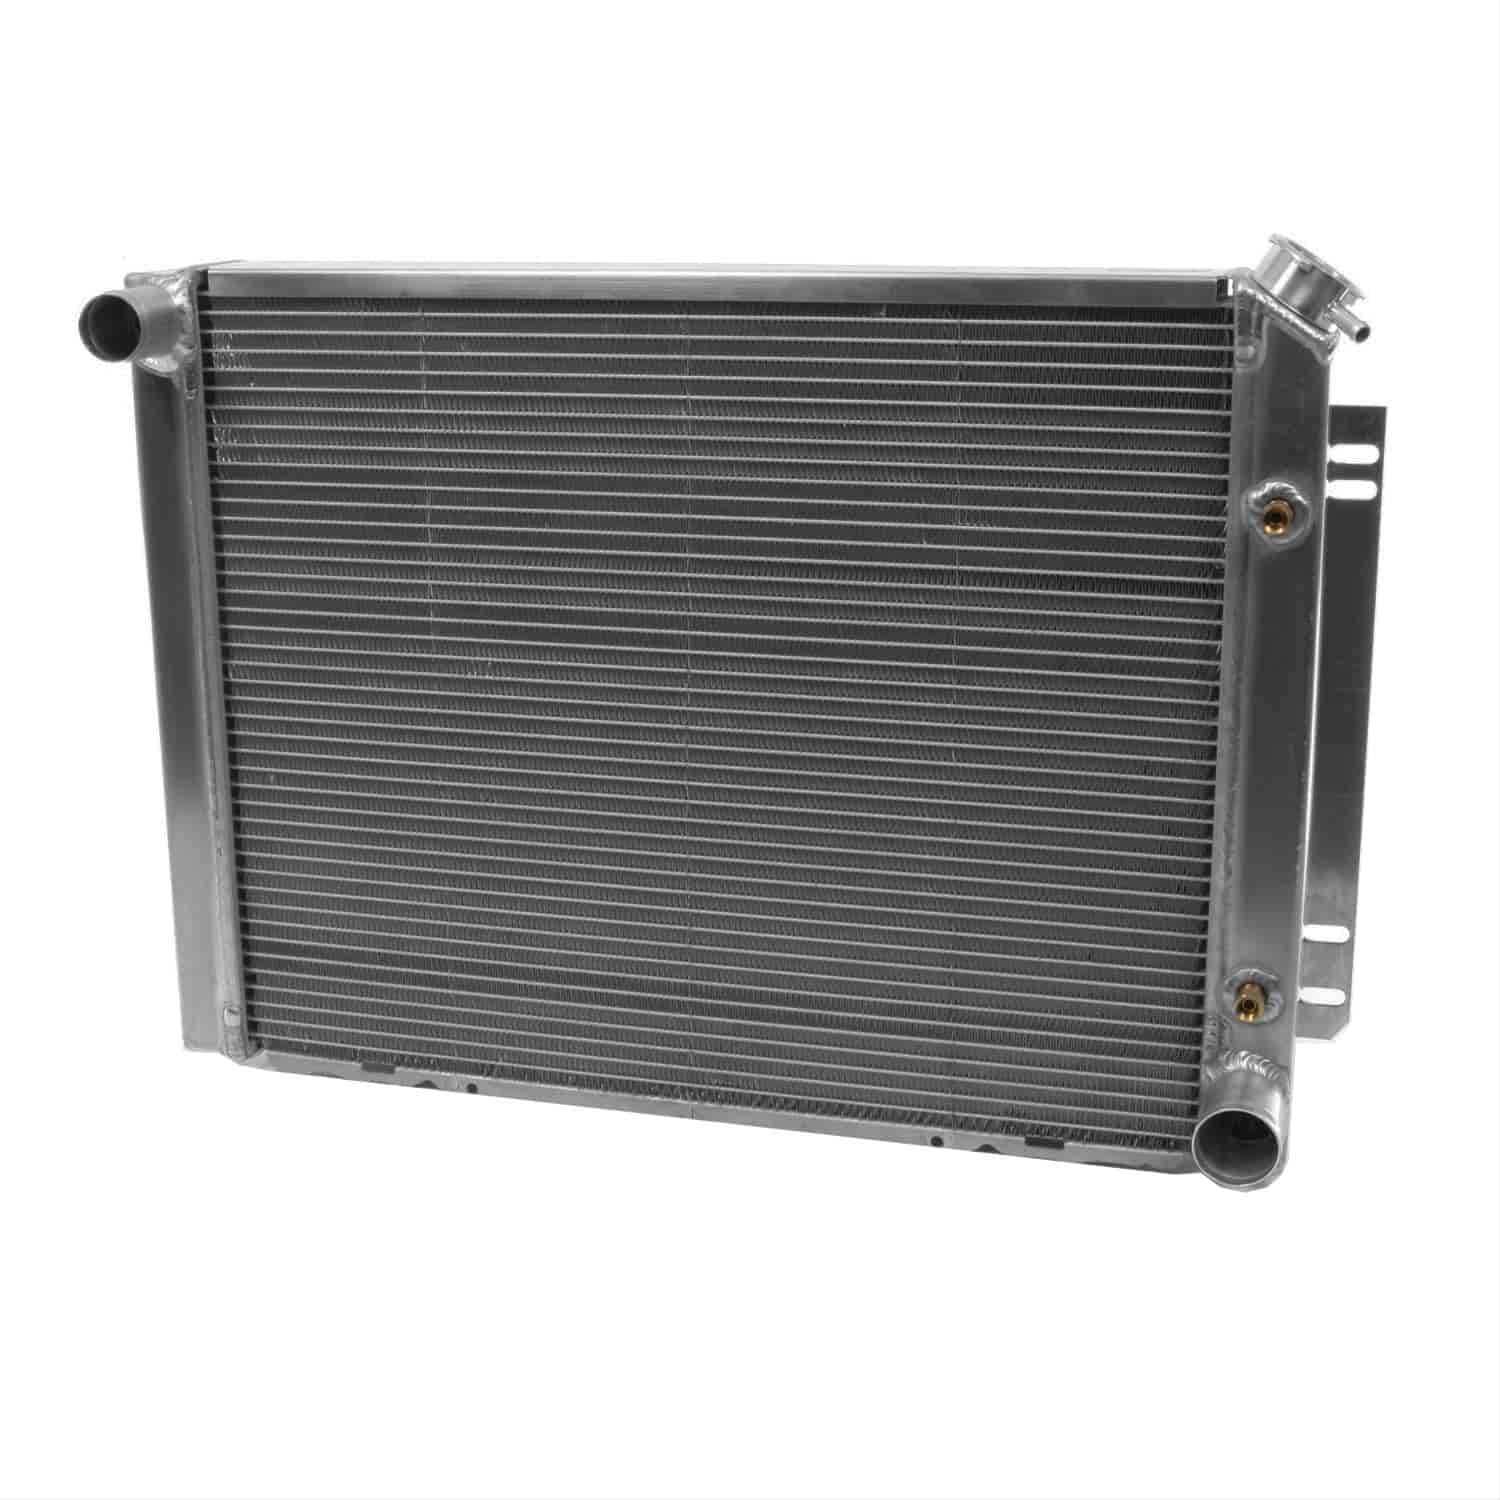 Be Cool Radiators 12009 - Be Cool Aluminator Series Custom Fit Aluminum Radiators